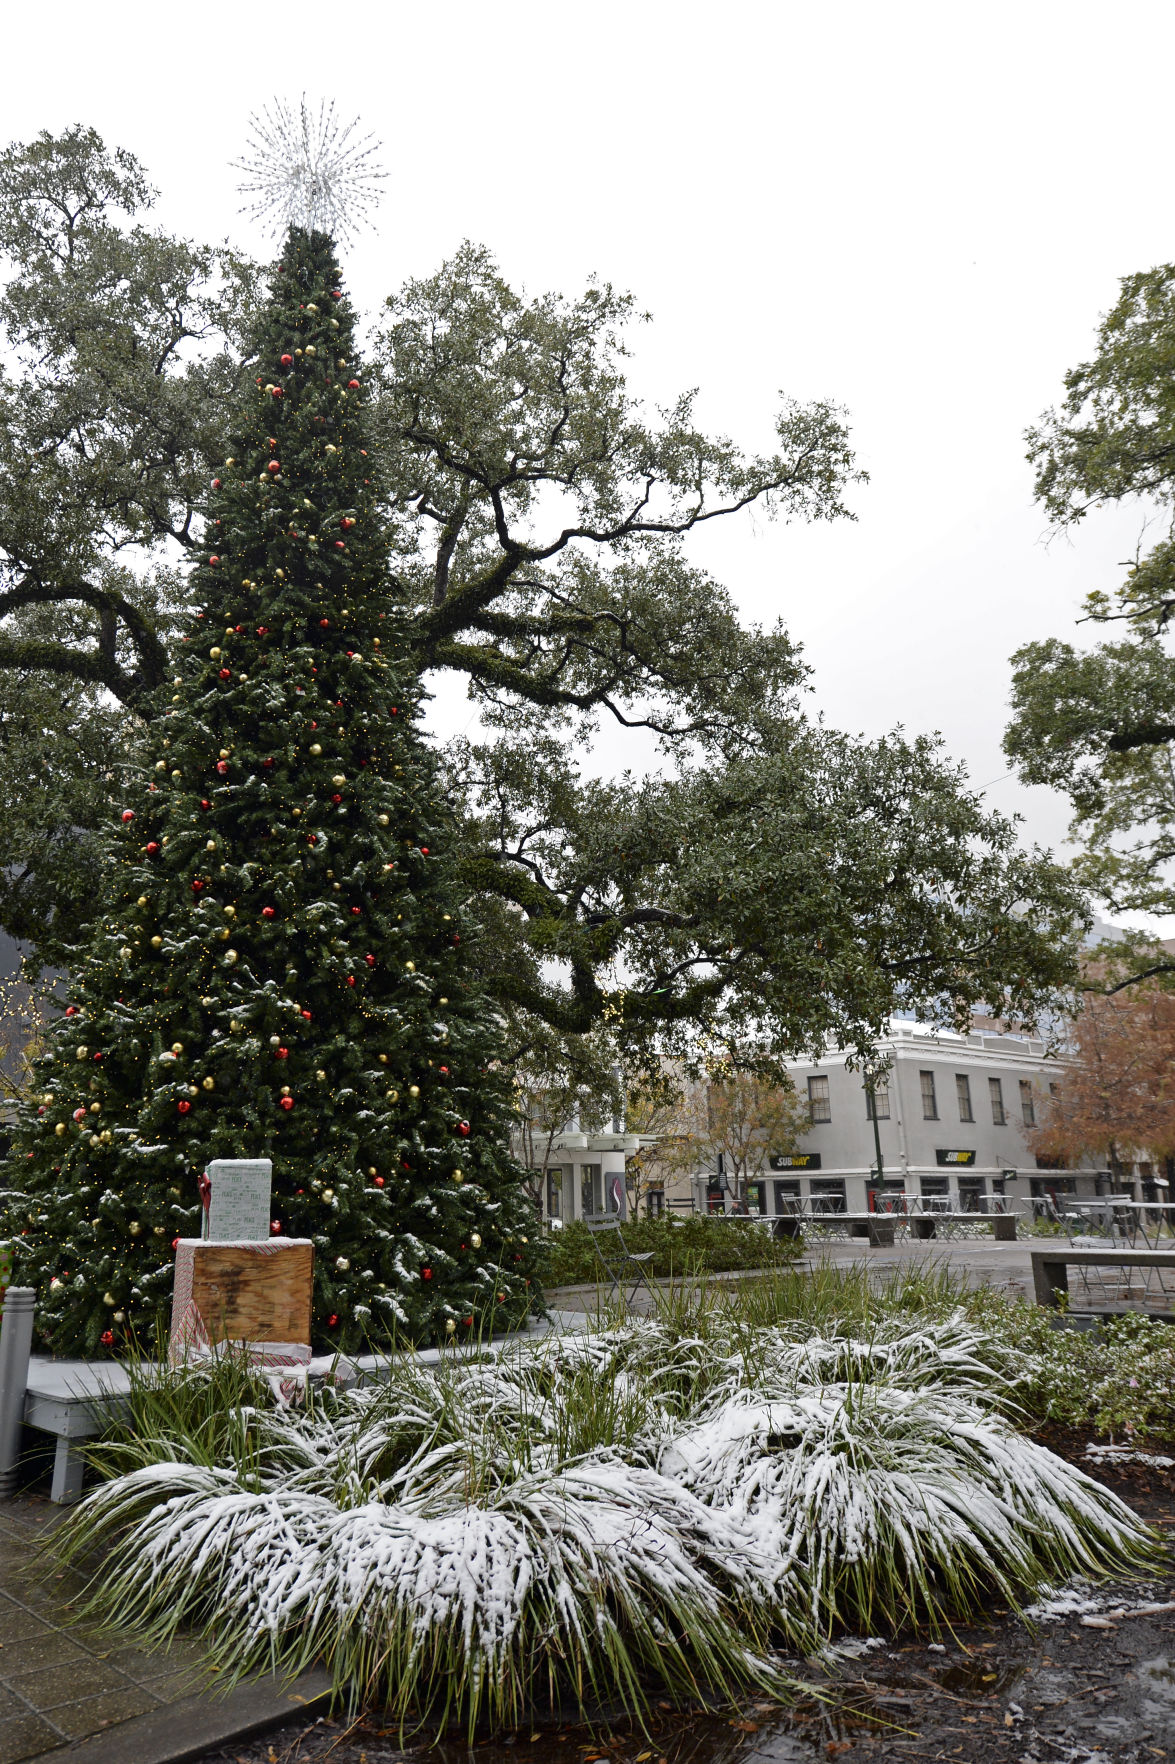 s Snowy Baton Rouge scene Dec 8 2017 from downtown to LSU